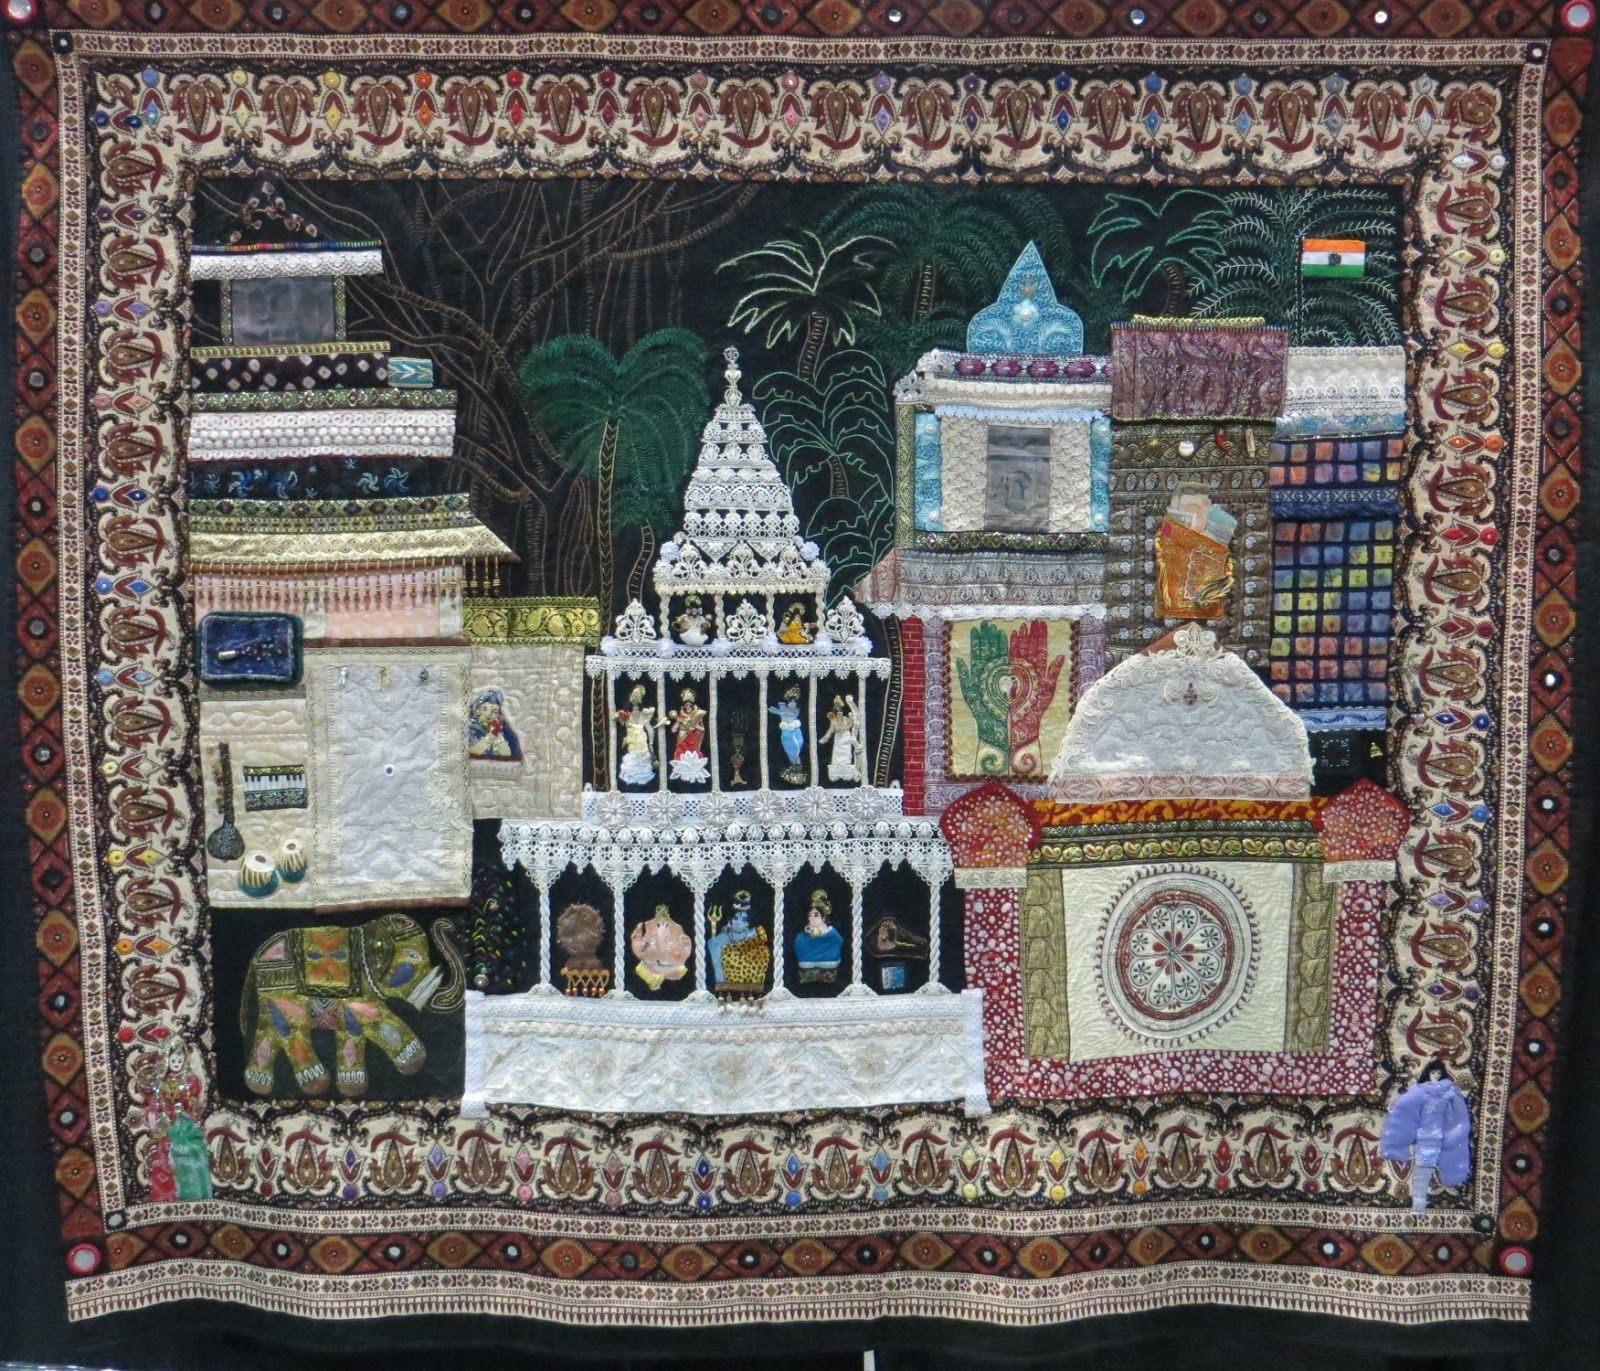 Cathy Geier's Quilty Art Blog: More Quilts from the IQF show in ... : quilt show chicago - Adamdwight.com